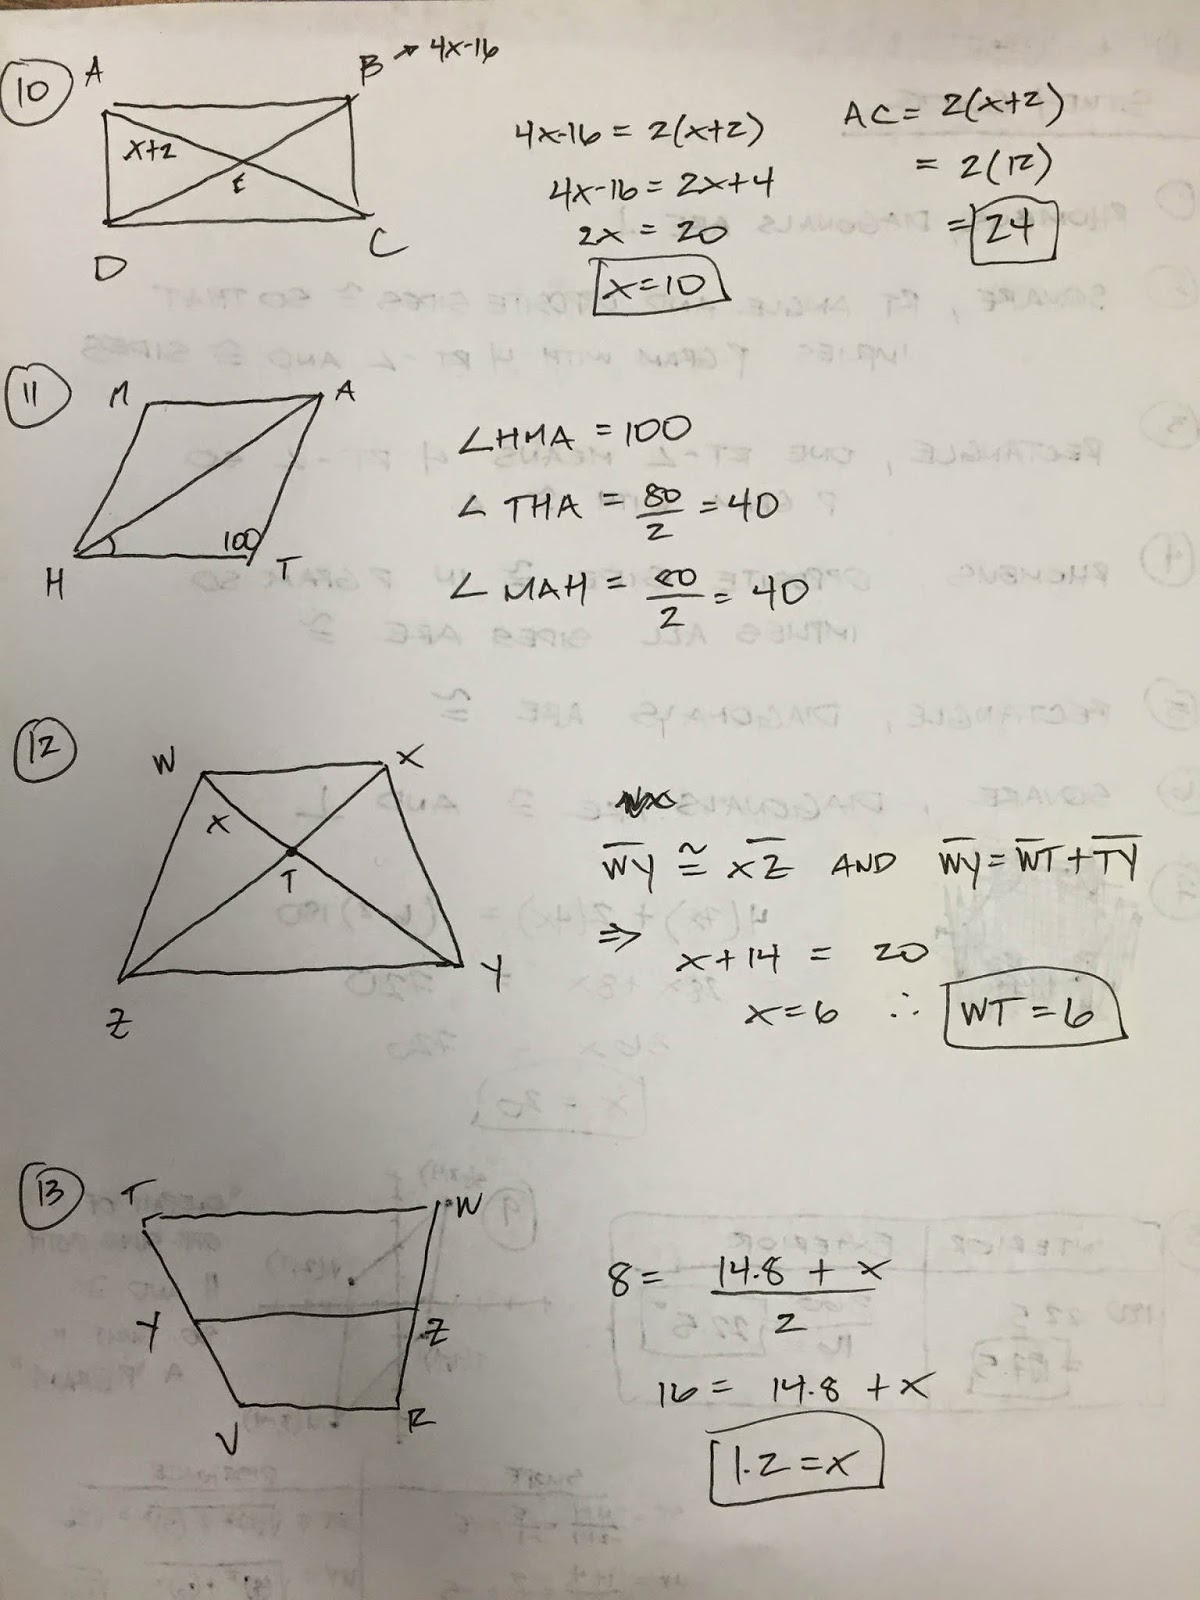 hight resolution of Unit 7 polygons and quadrilaterals homework 3 answer key